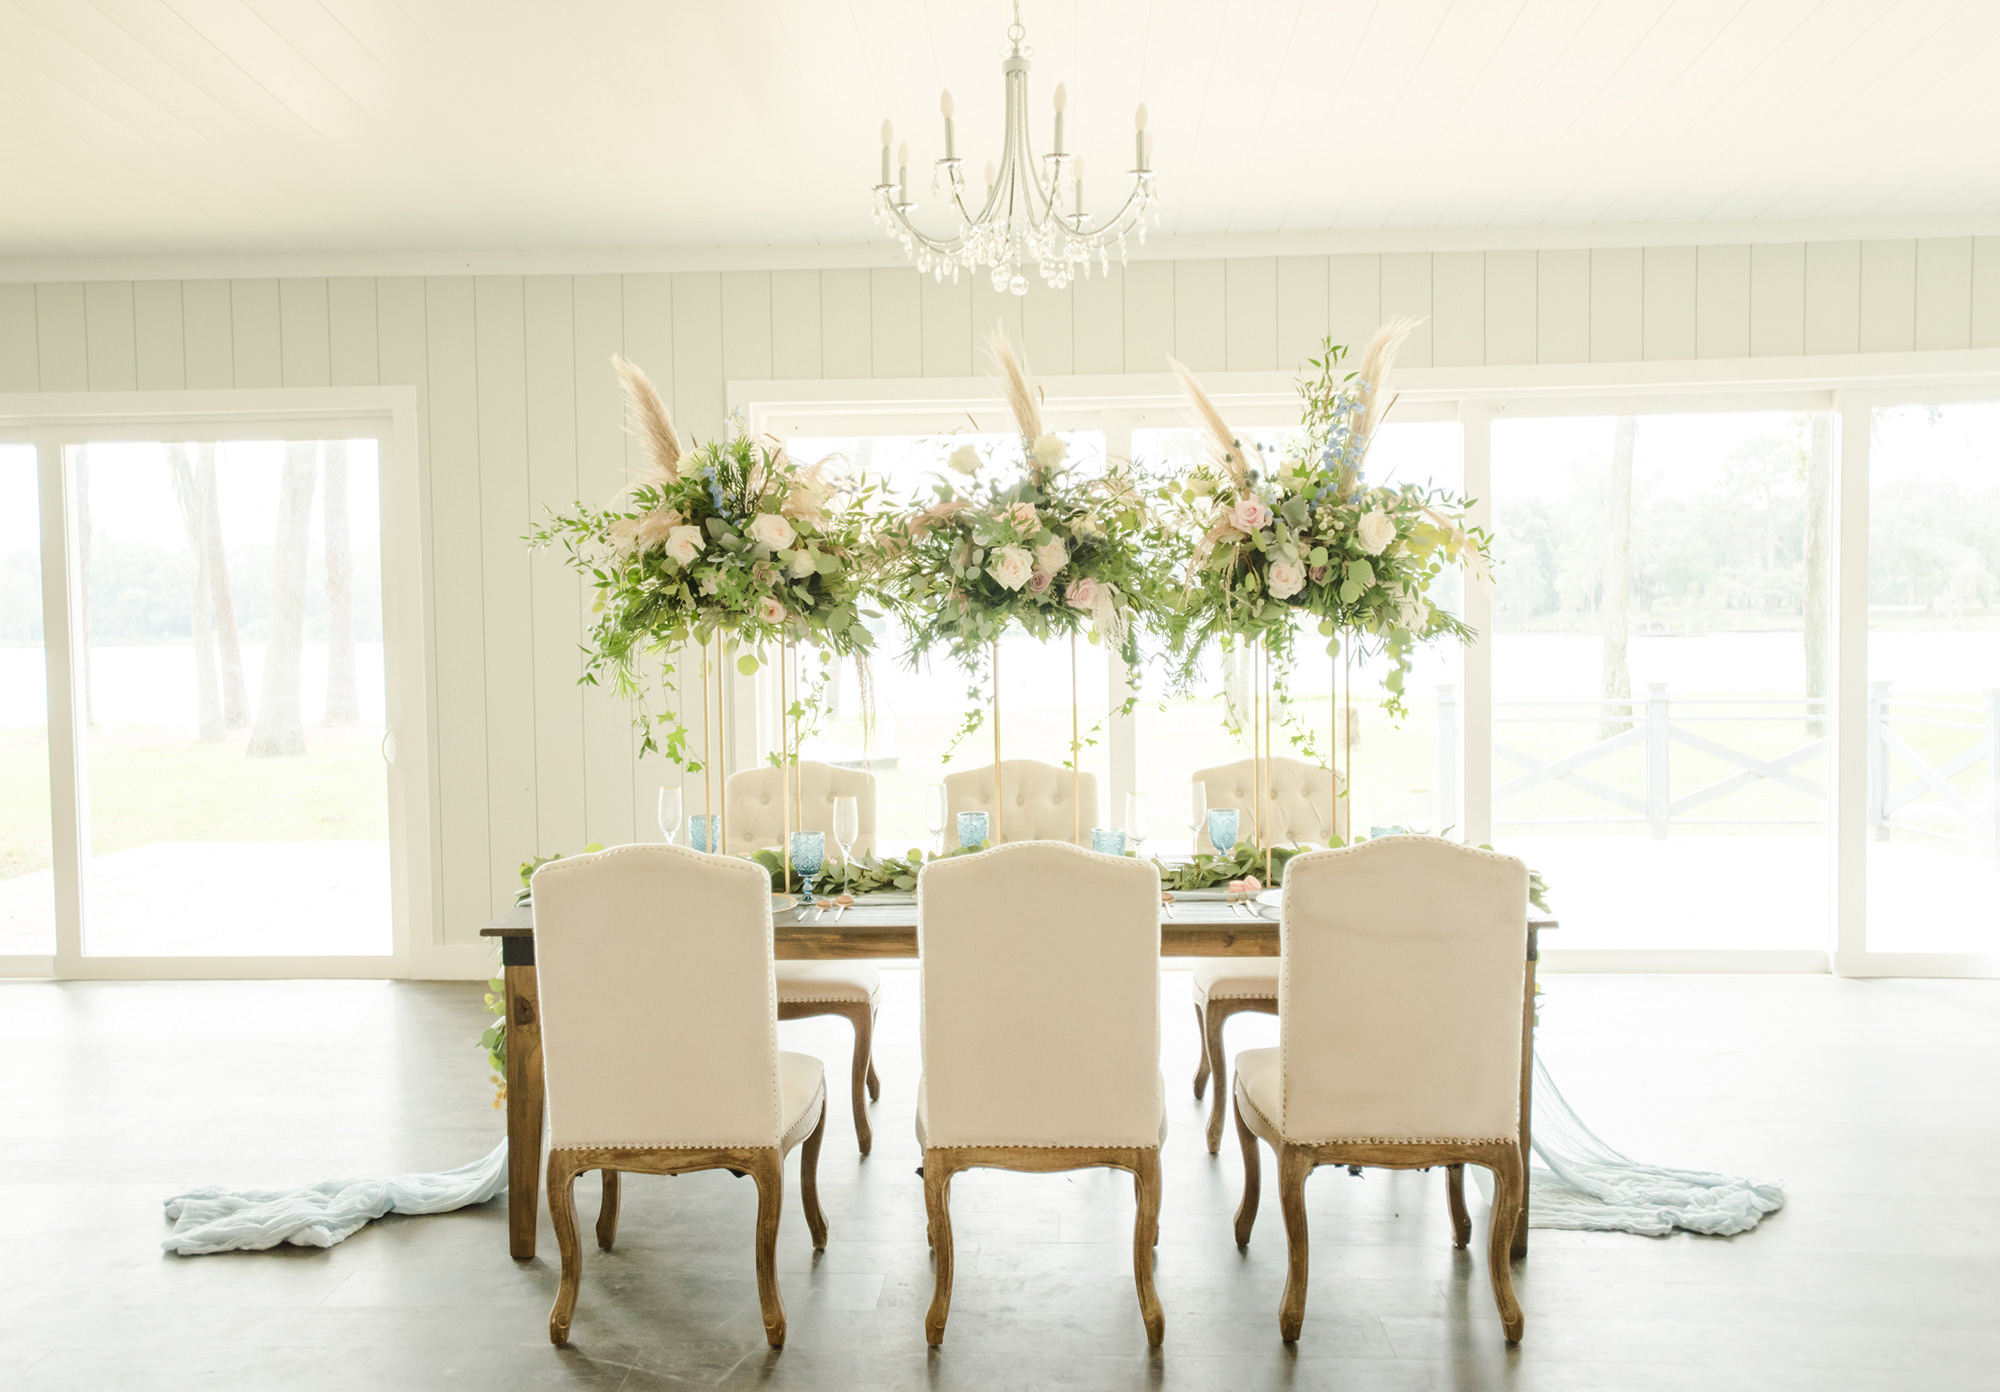 Dusty Rose Styled Wedding Shoot, Antique Off White Ivory Chairs, Wood Table with Tall Gold Frame Stands, Greenery, Blush Pink and White Roses, and Feather Floral Arrangements, Blue Wine Glasses   Tampa Bay Wedding Planner Elegant Affairs by Design   Odessa Rustic Waterfront Wedding Venue Barn at Crescent Lake